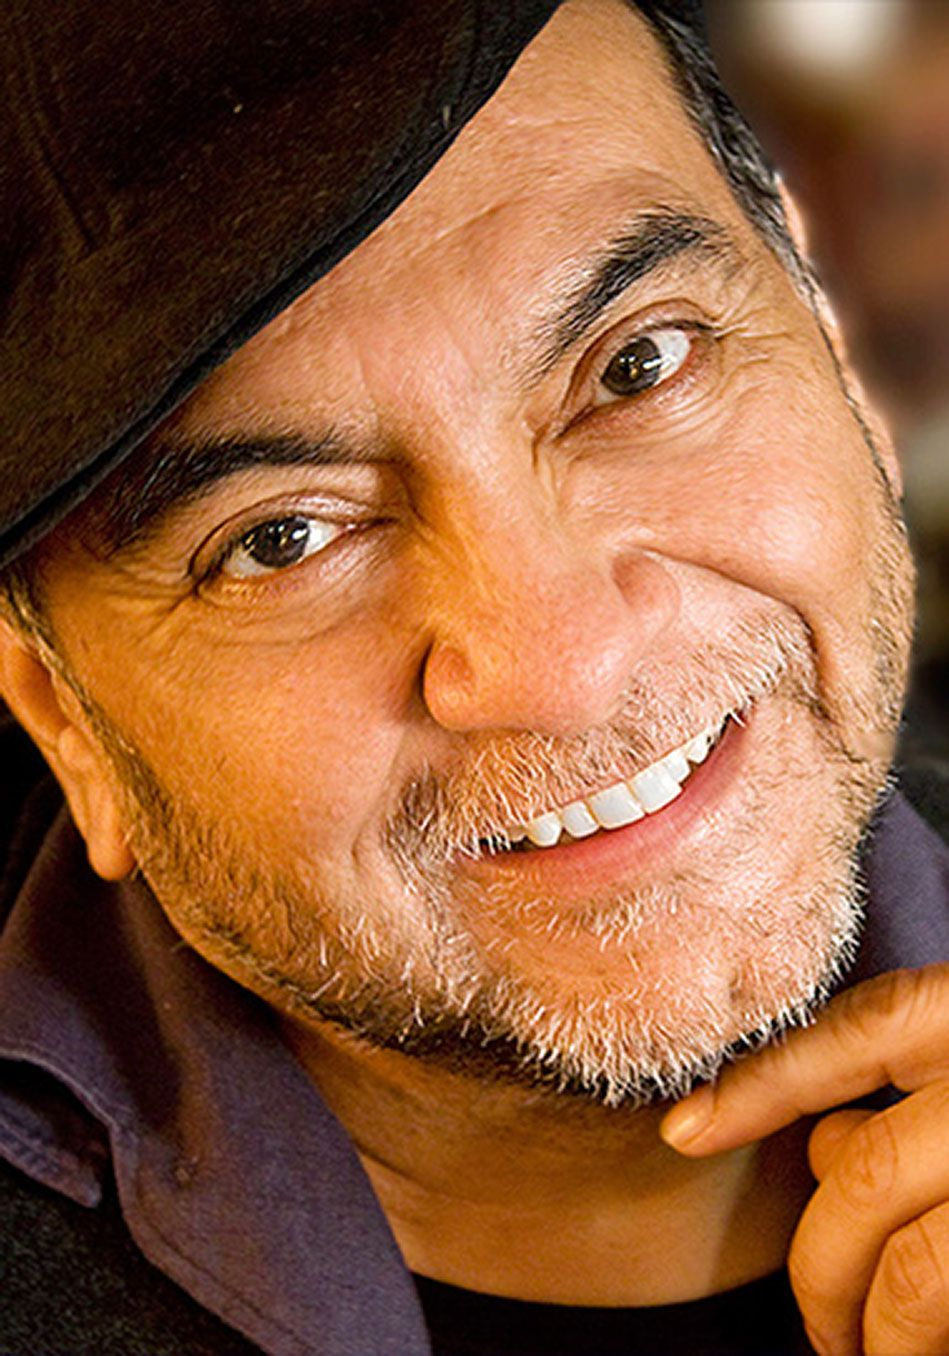 How To Live The Four Agreements Qa With Don Miguel Ruiz Id